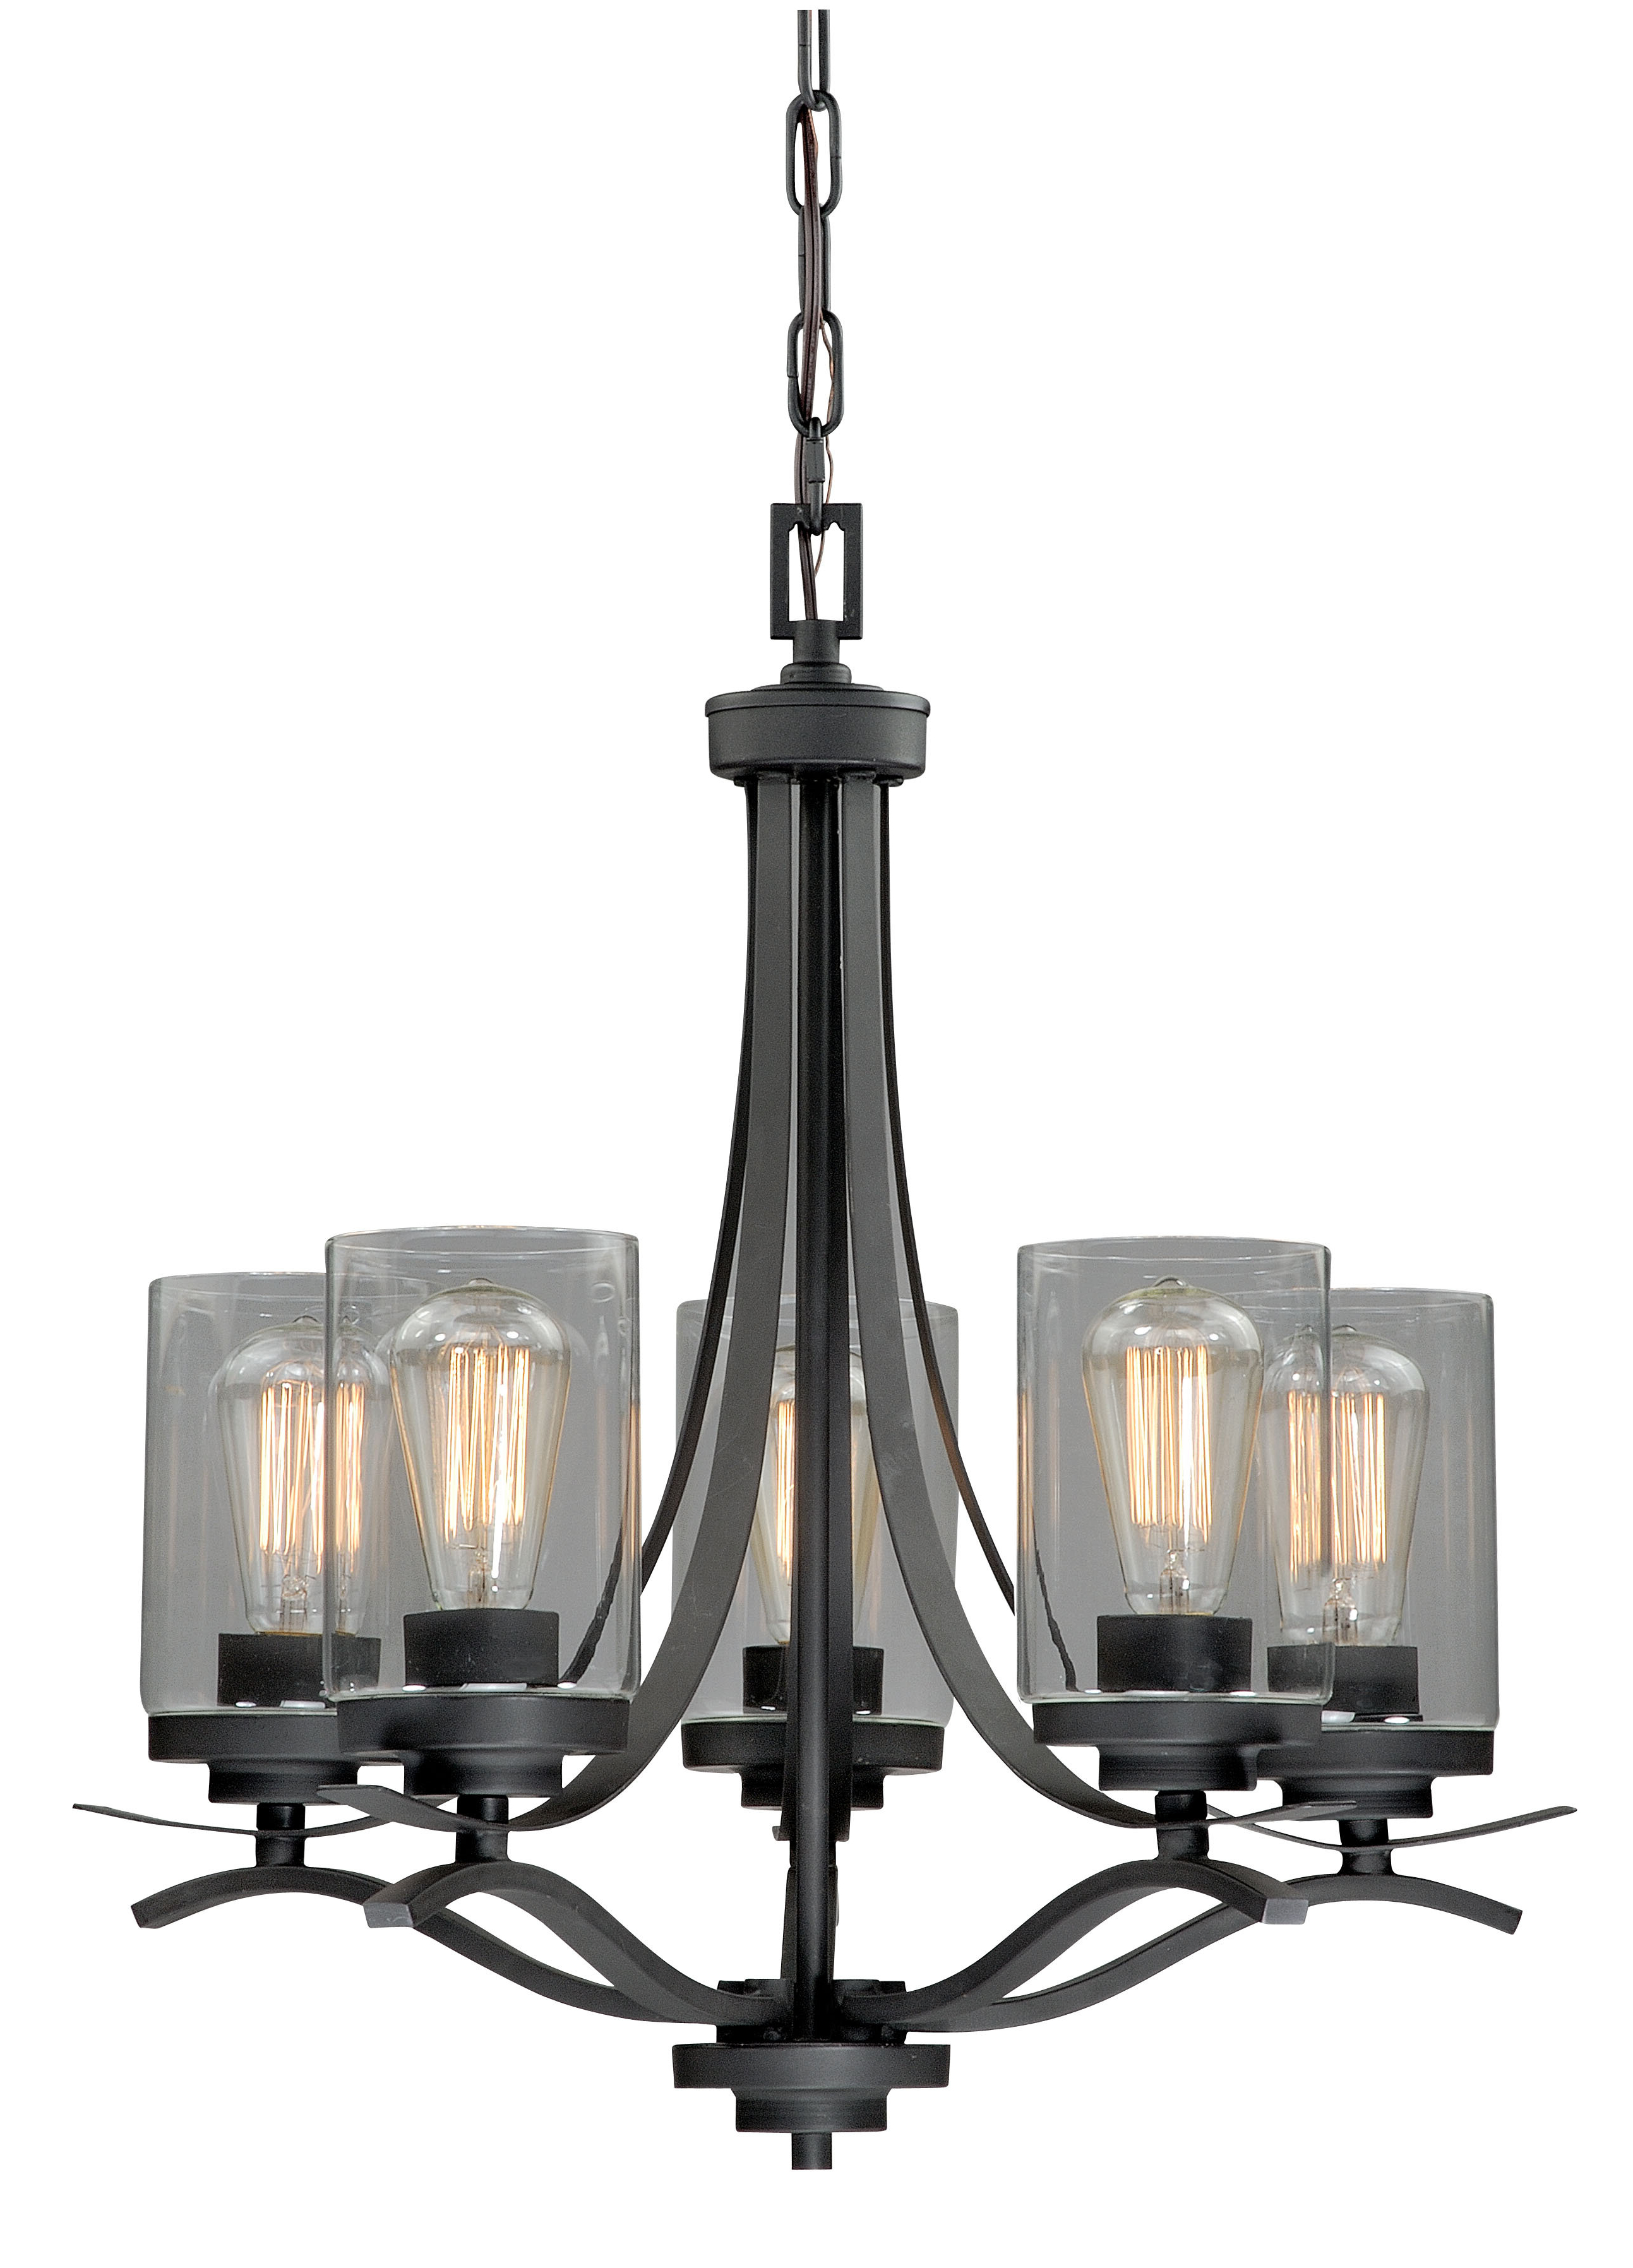 Gaudet 5 Light Shaded Chandelier Throughout Well Known Crofoot 5 Light Shaded Chandeliers (View 10 of 20)